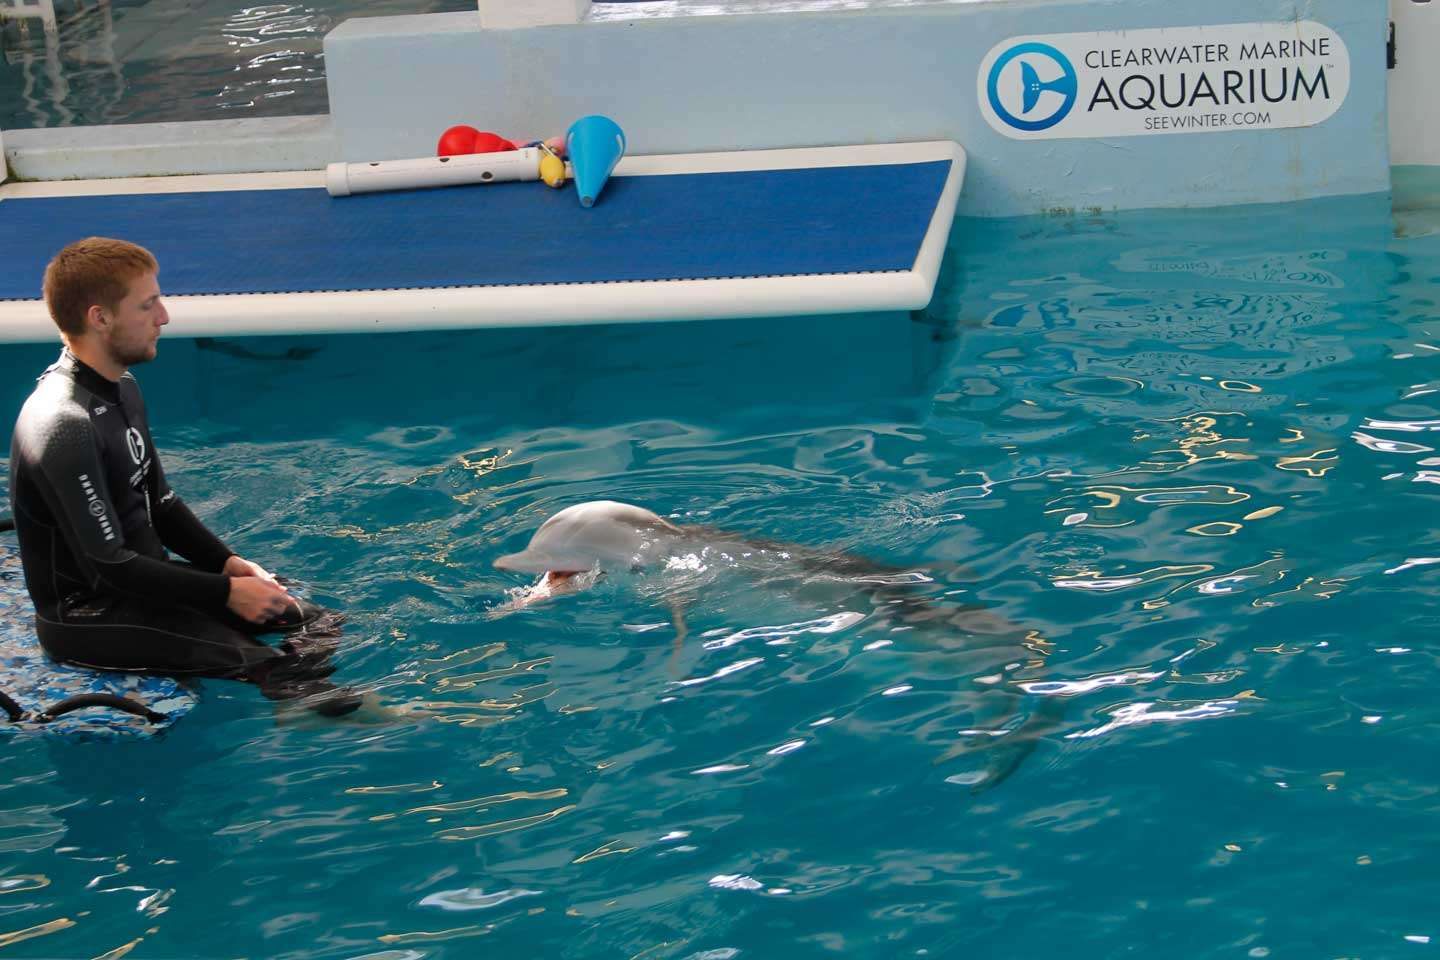 Why You Should Visit The Clearwater Marine Aquarium